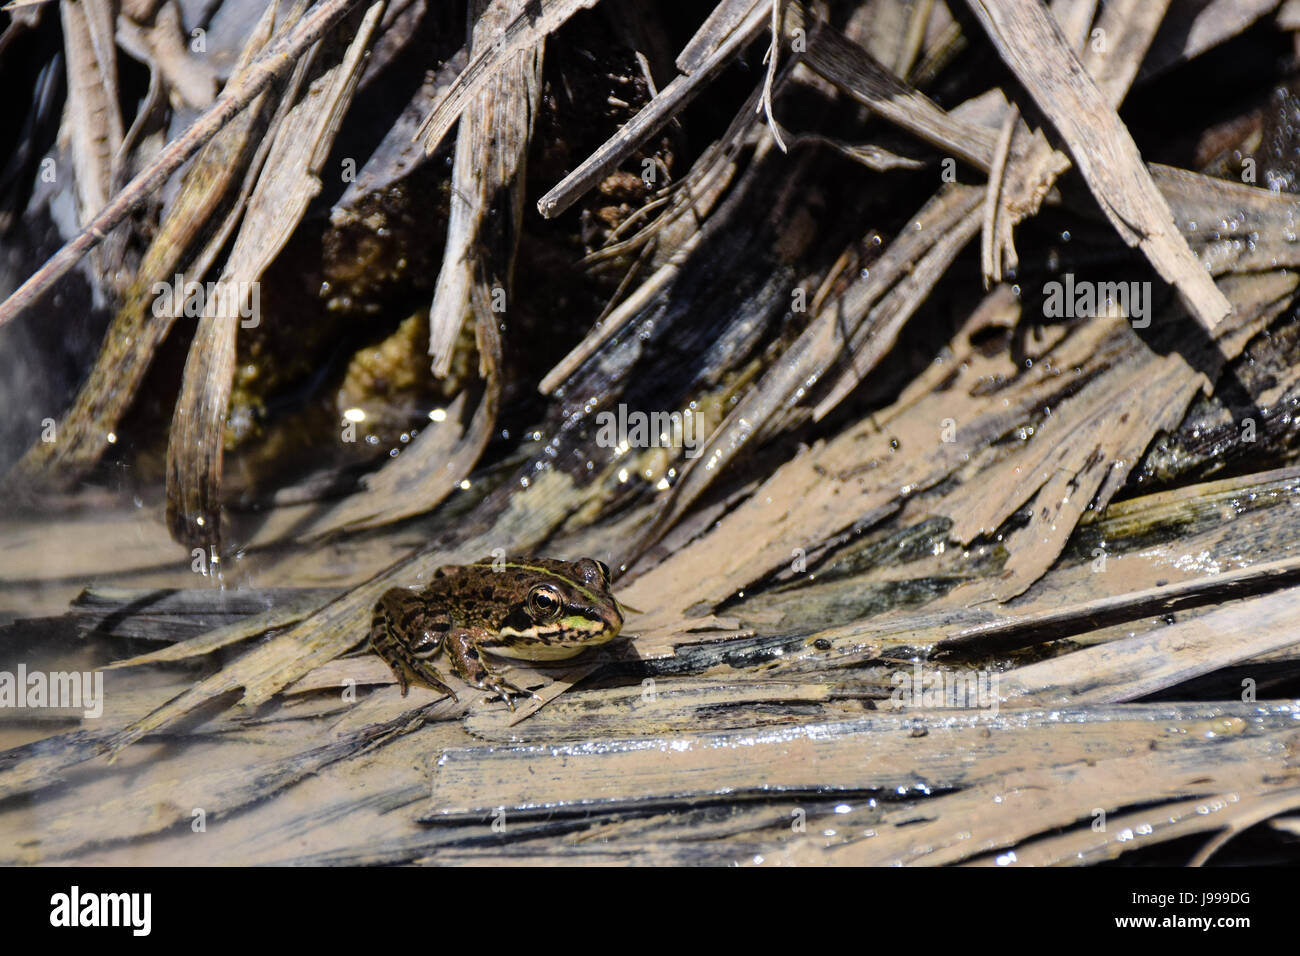 Coruna frog, Perez's Frog (Rana perezi, Rana ridibunda perezi) found submerged in pond water in Porto Santo - Stock Image